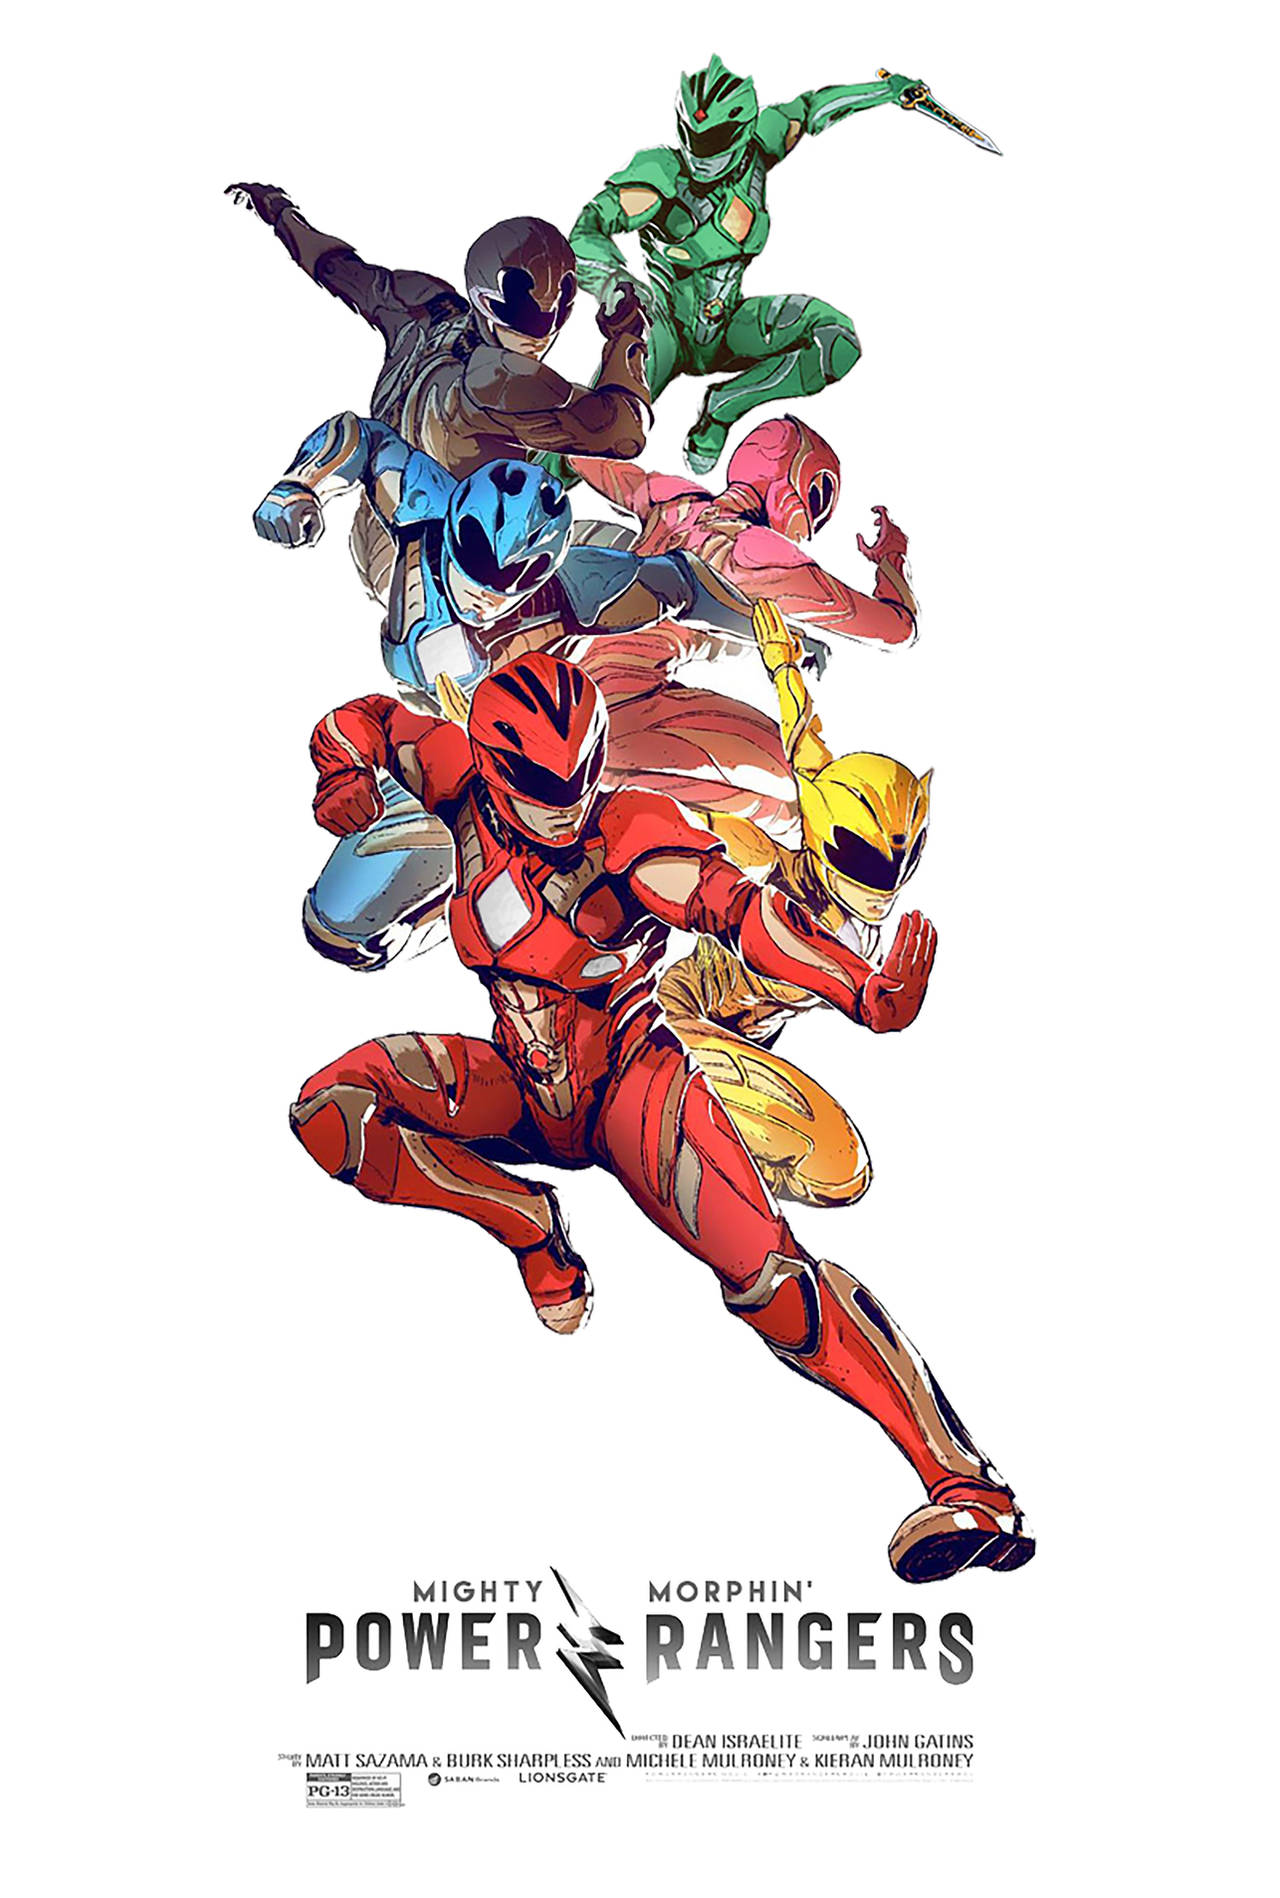 Power Rangers 2 Mighty Morphin Power Rangers By Nei1b On Deviantart